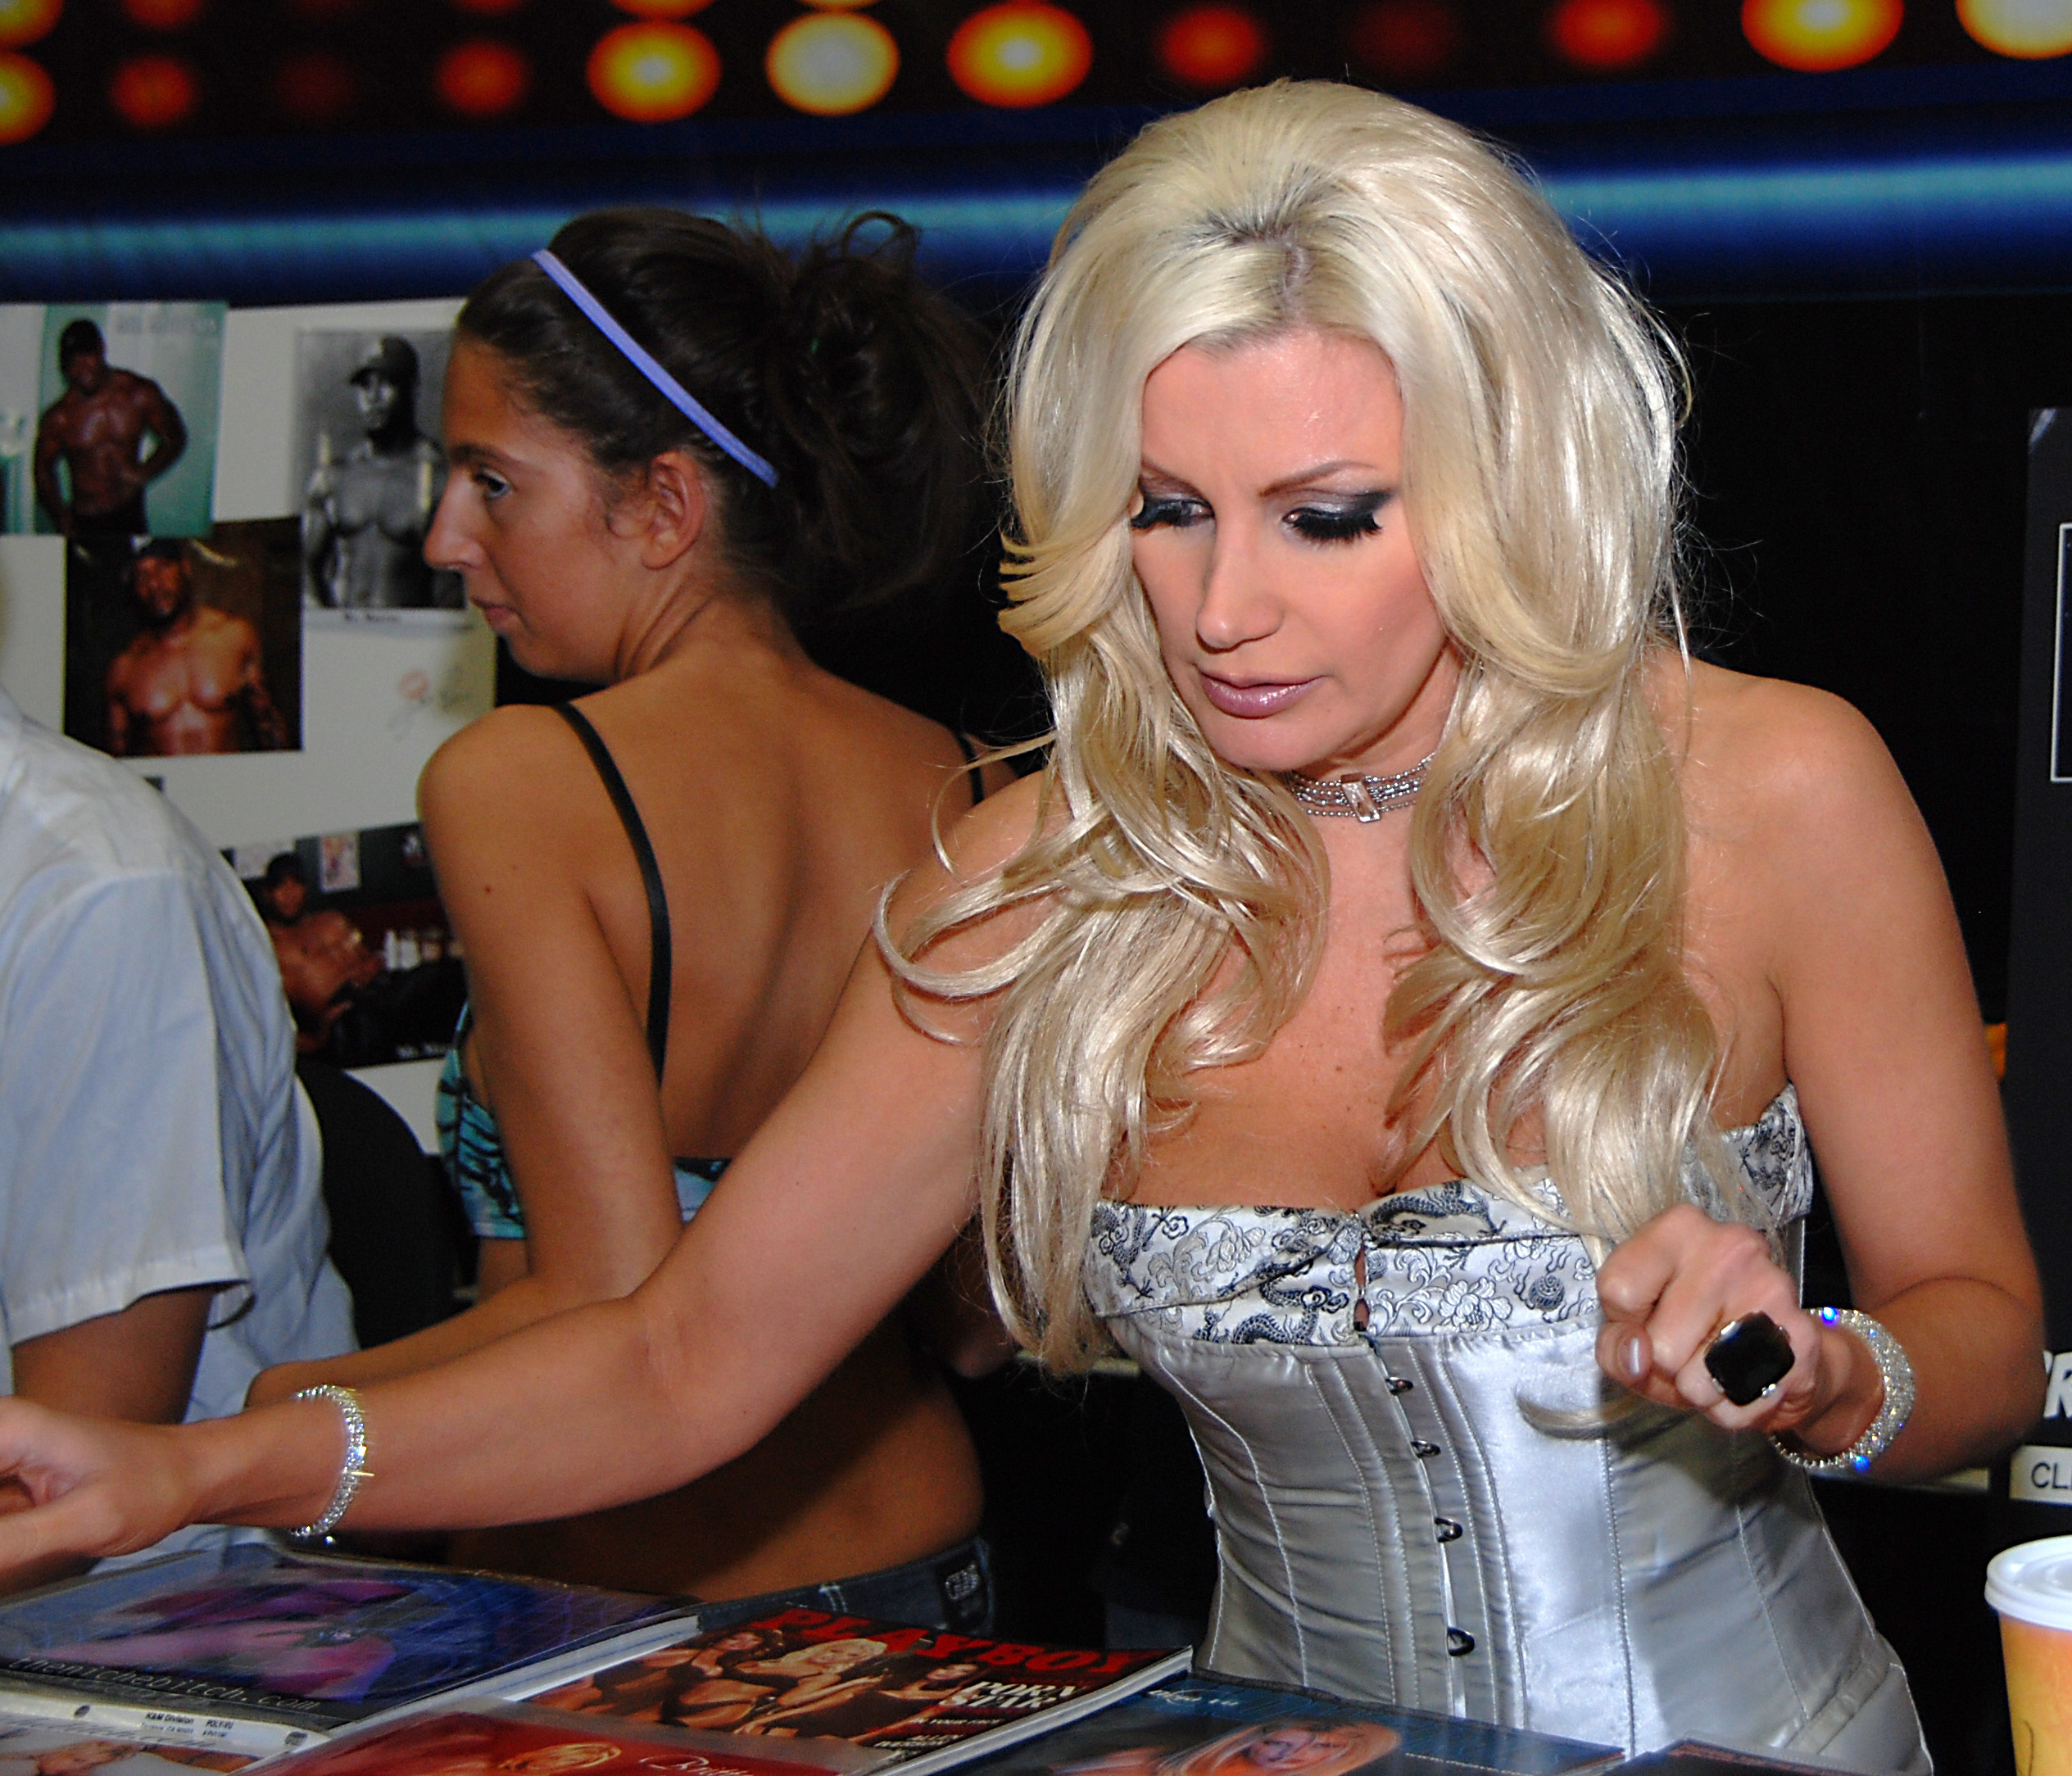 brittany andrews at exxxotica new jersey 2010 jpg